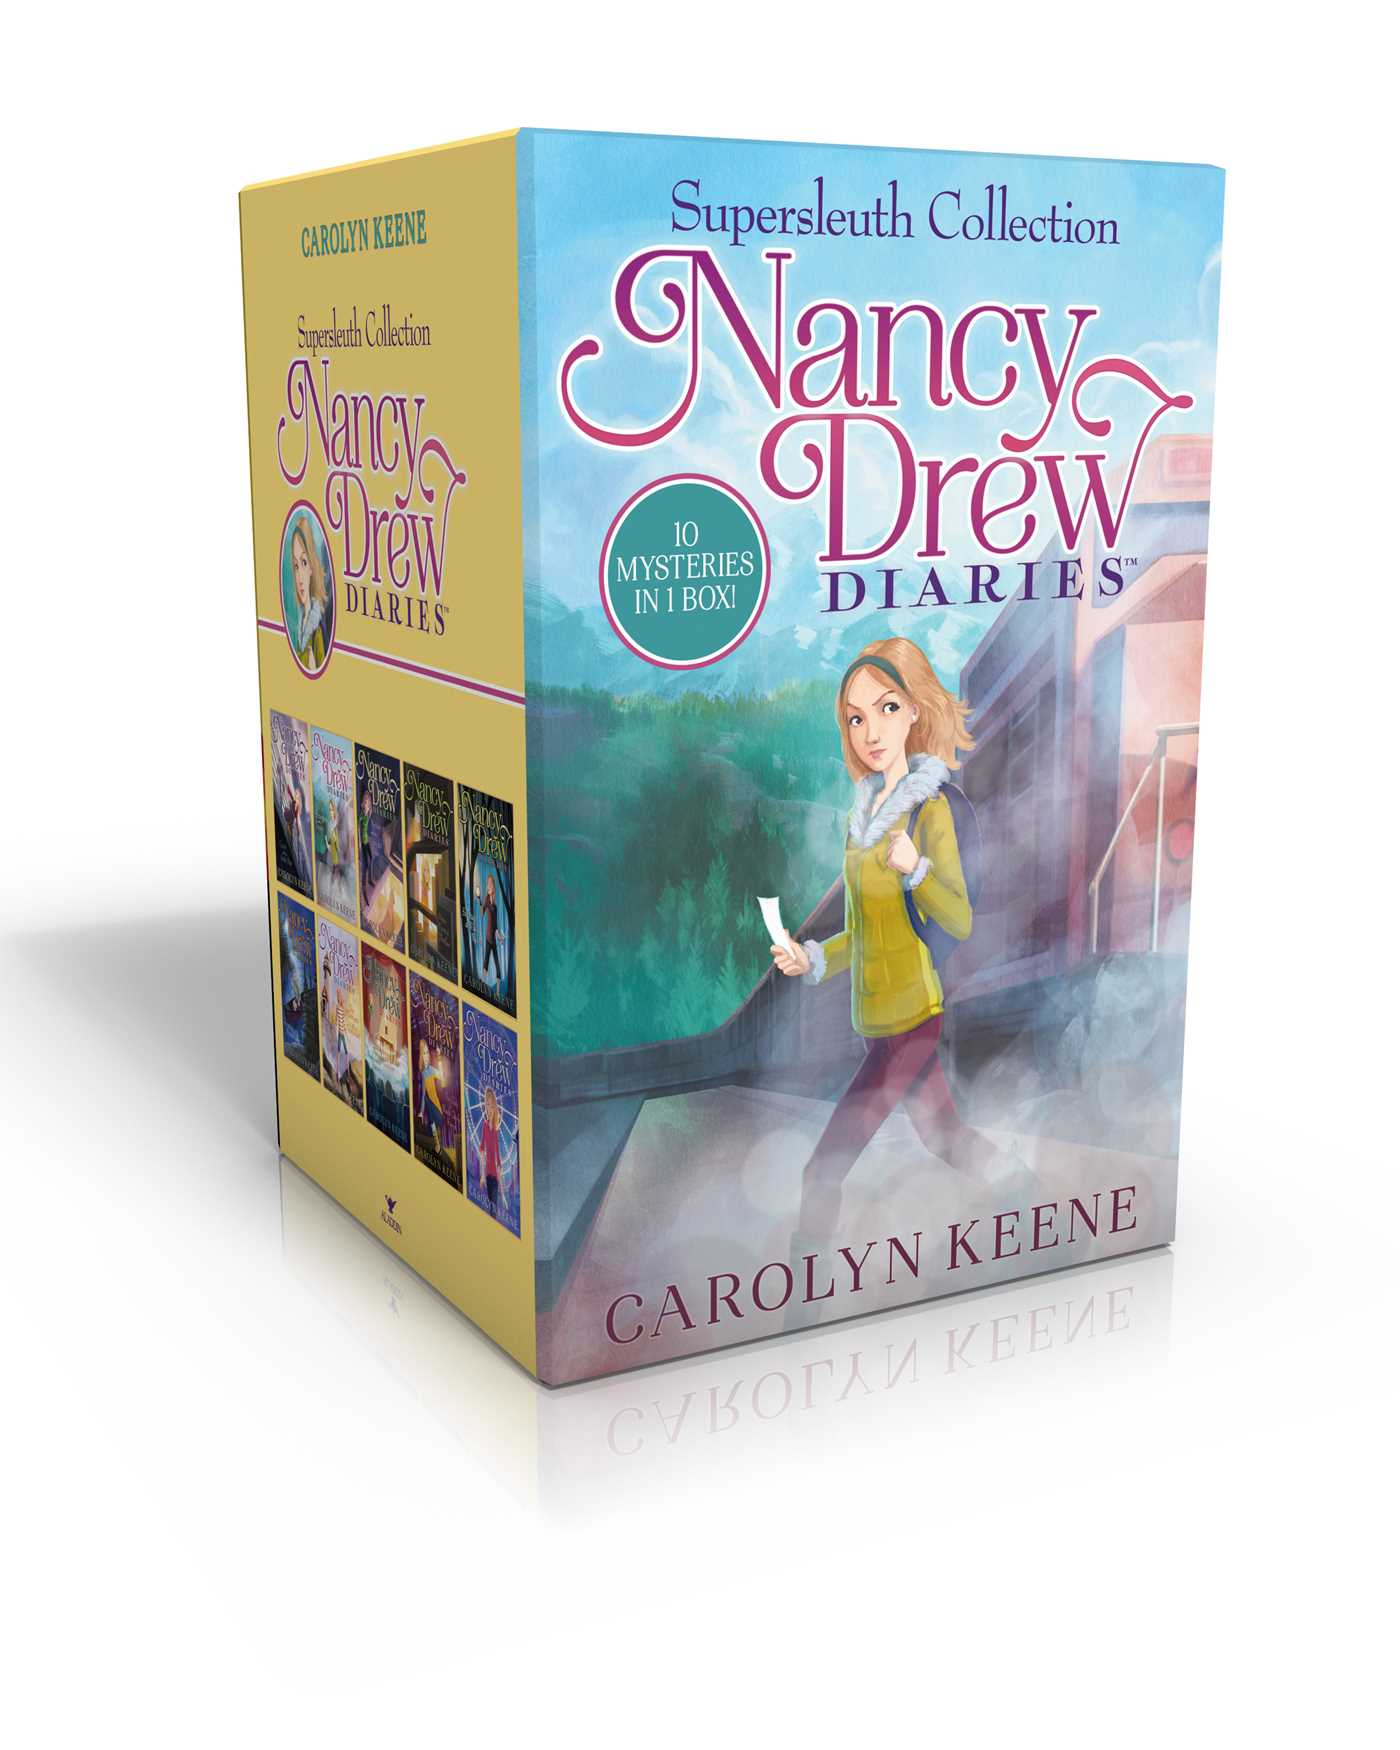 Nancy drew diaries supersleuth collection 9781481469241 hr